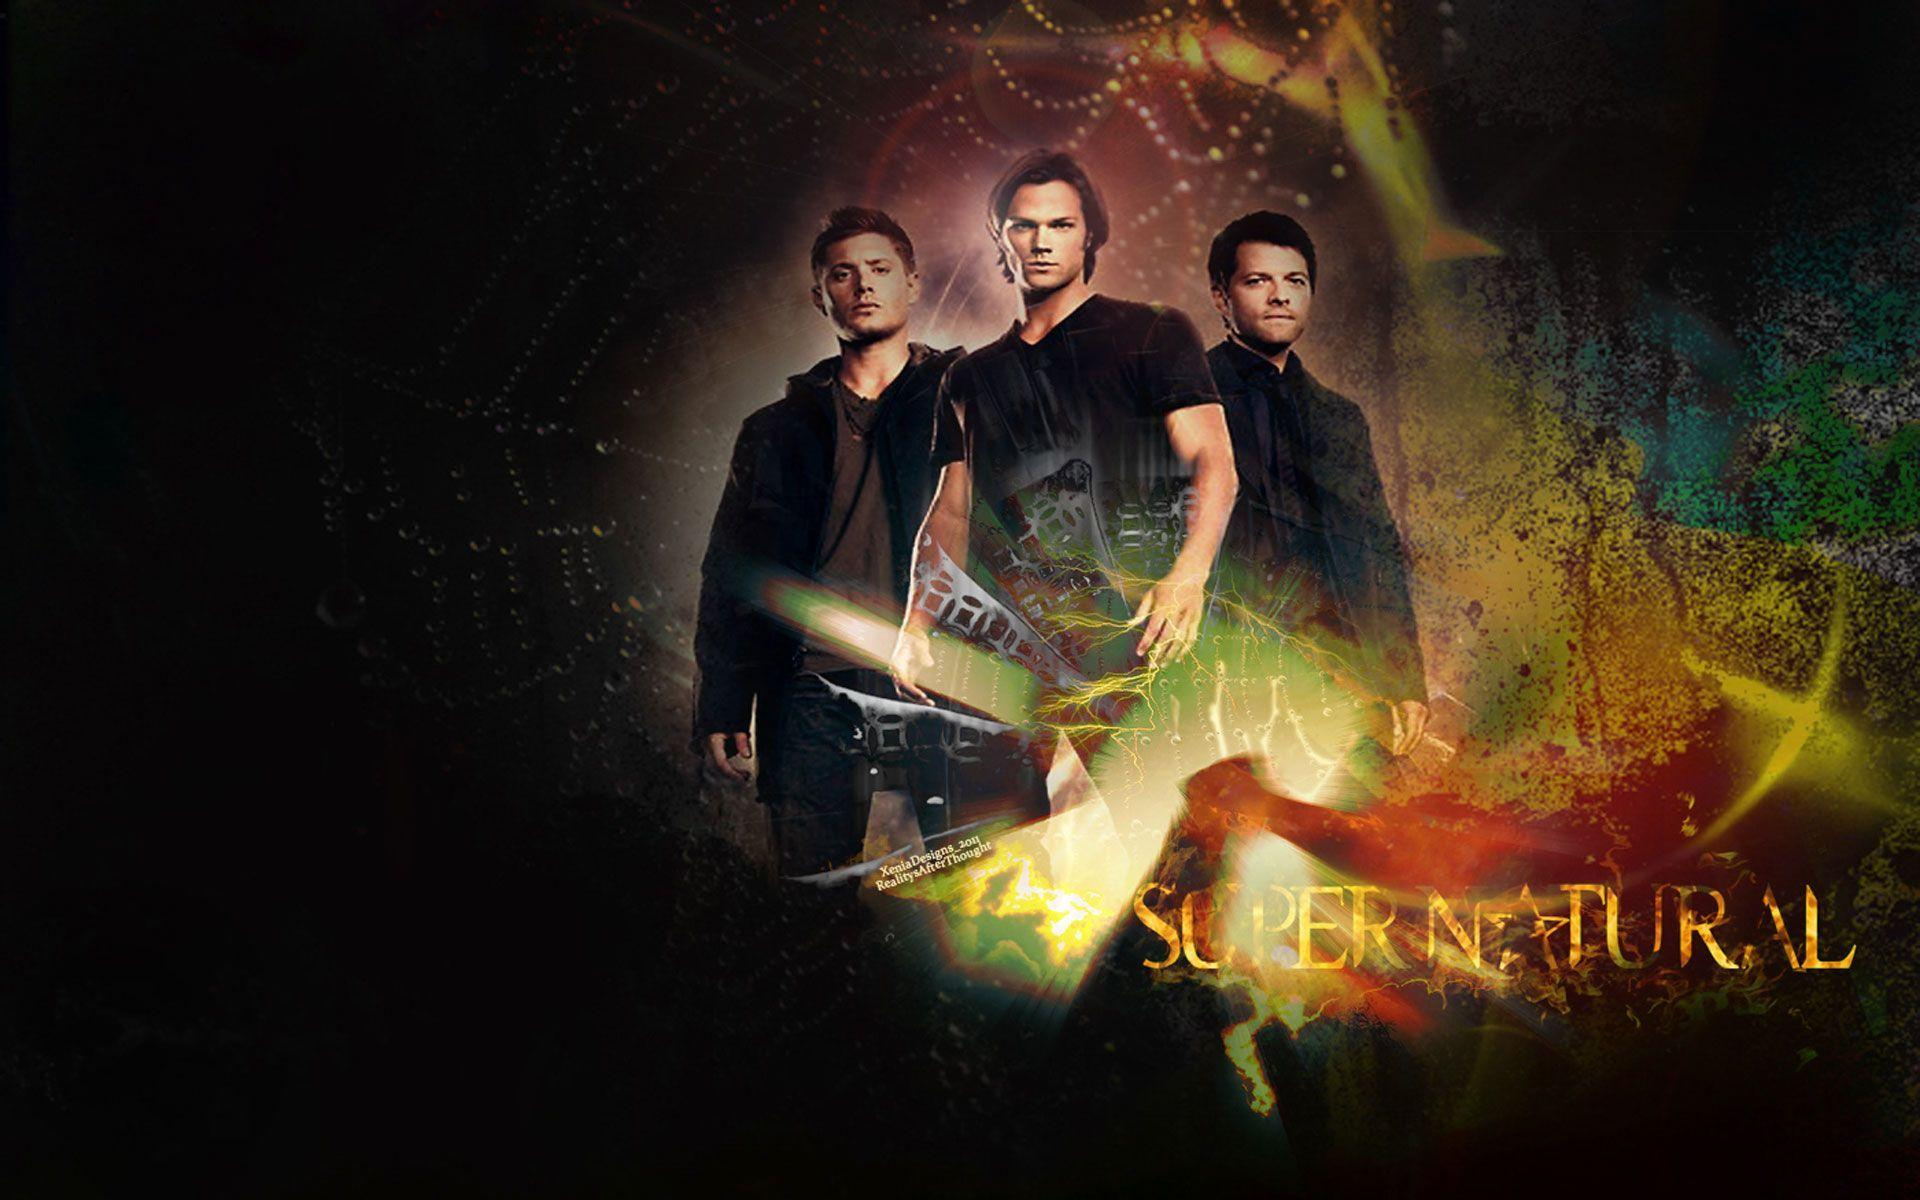 supernatural wallpapers 2016 wallpaper cave